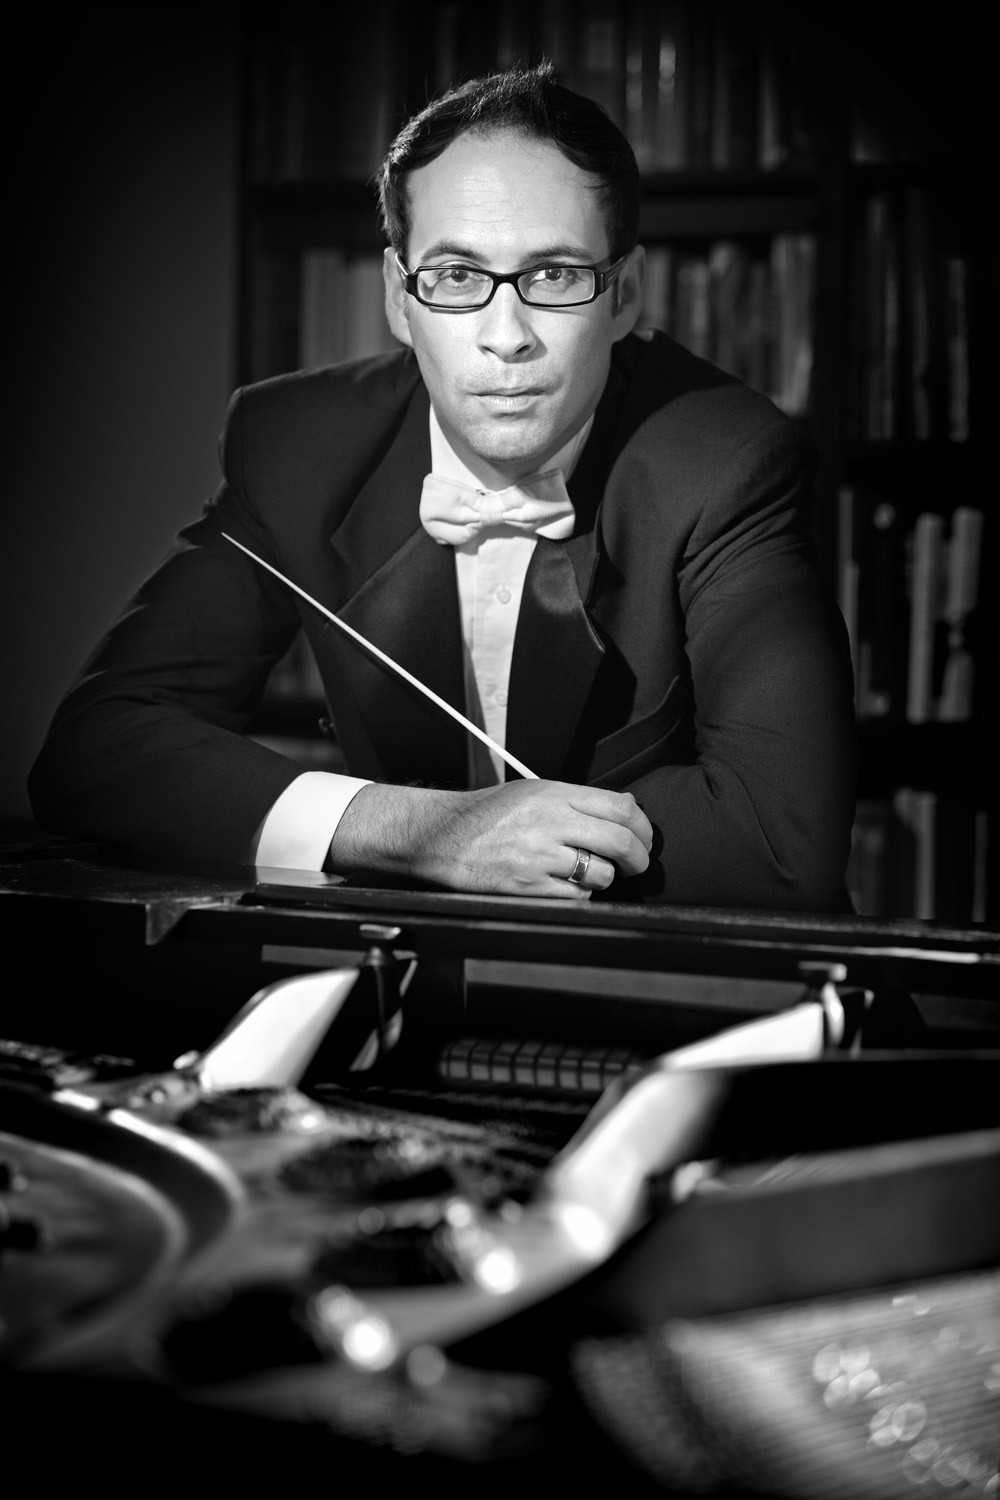 Tobias Foskett, Conductor, Berlin, Germany